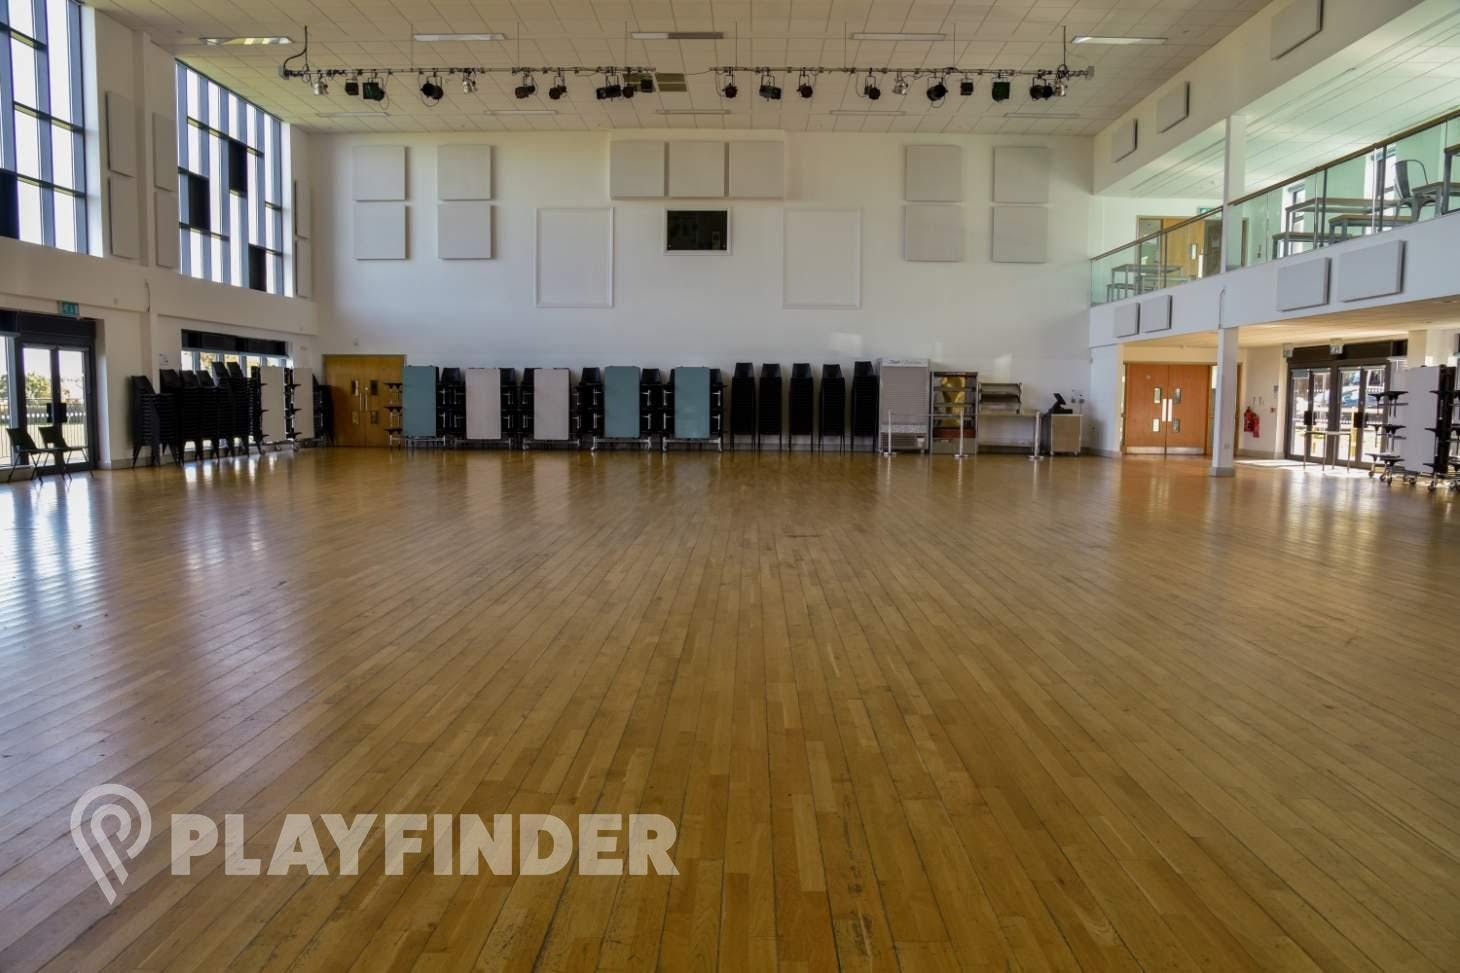 Ravens Wood School Main hall space hire